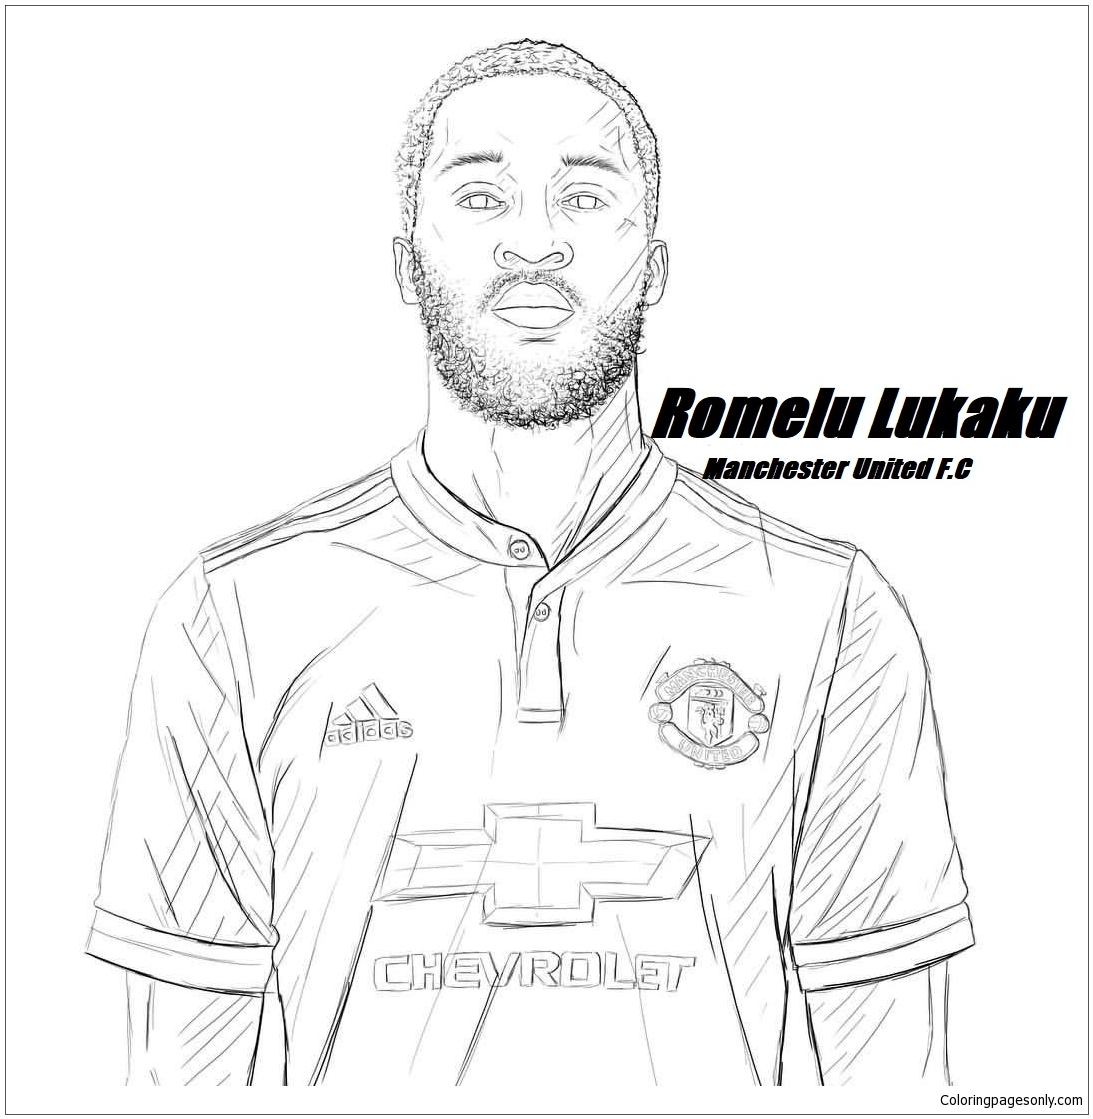 Romelu Lukakuimage 2 Coloring Page Free Coloring Pages